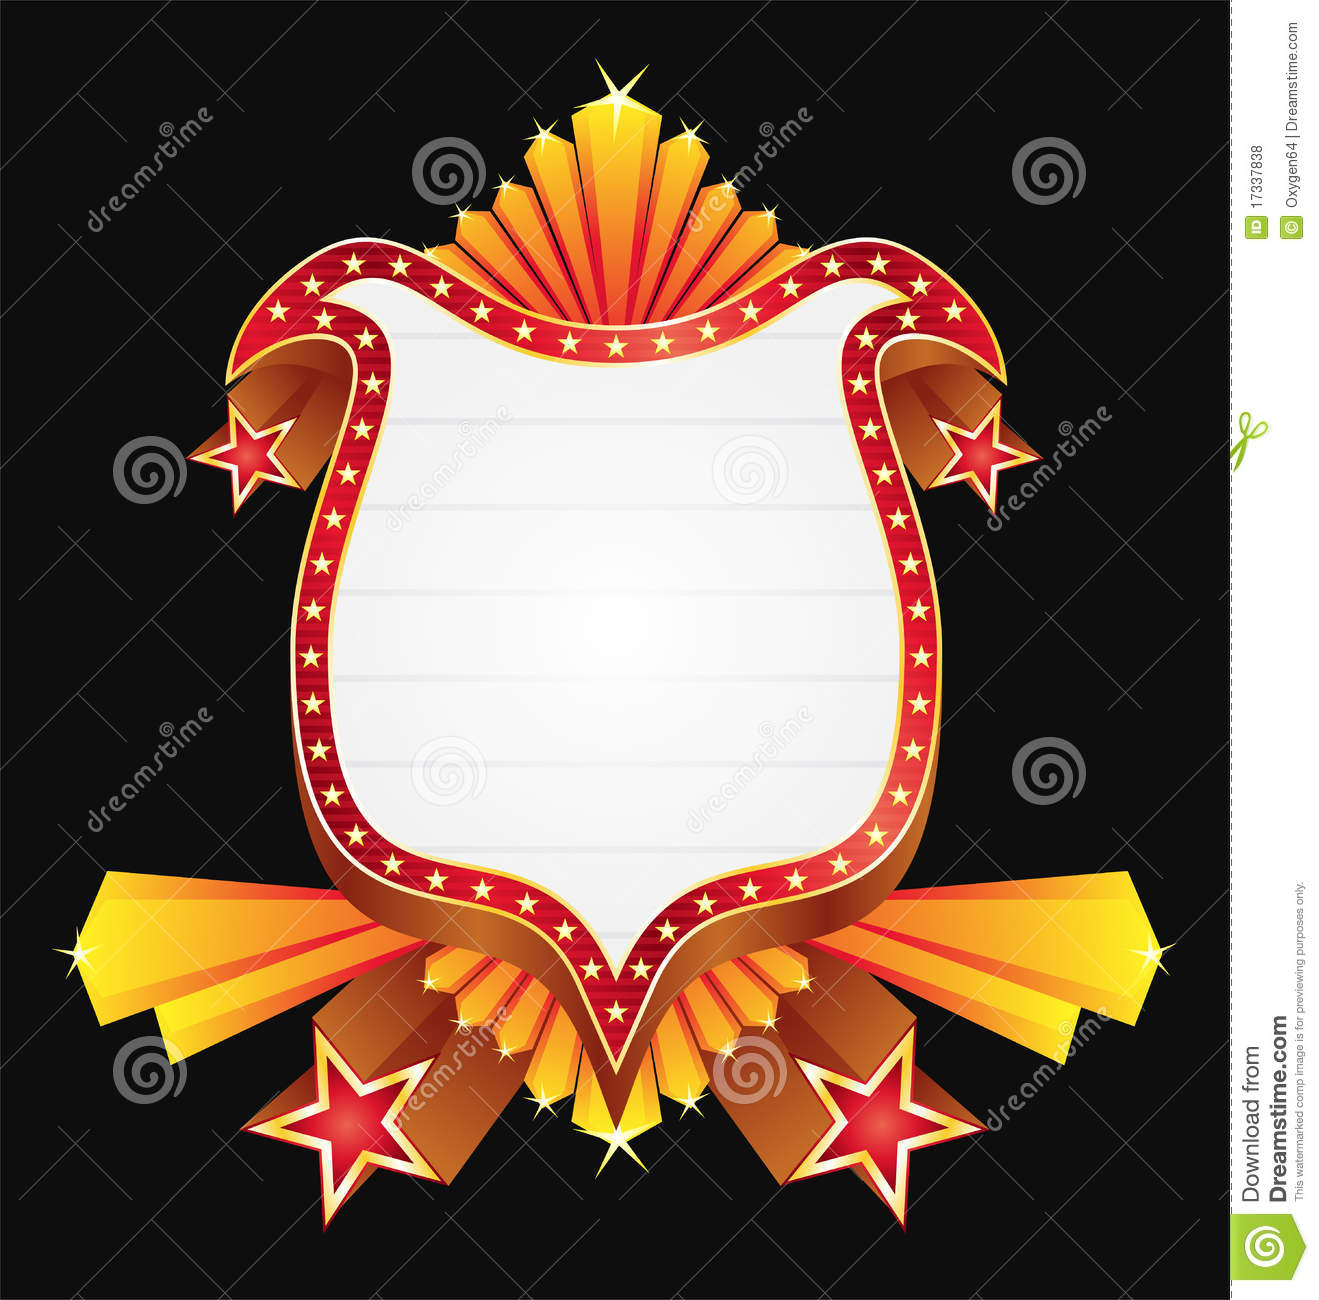 Shield With Stars Royalty Free Stock Photos Image 17337838